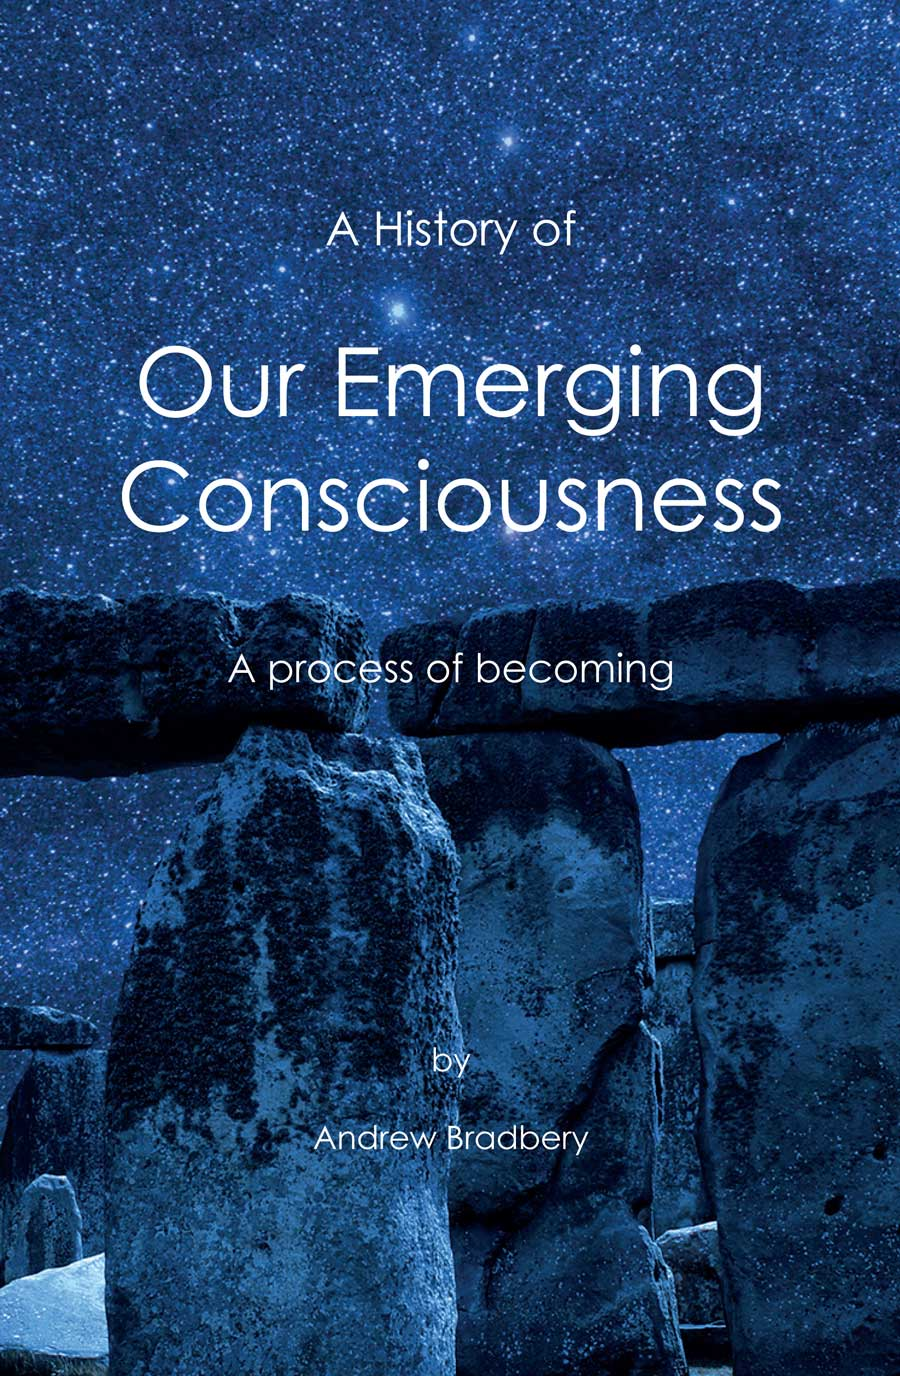 Our Emerging Cosciousness